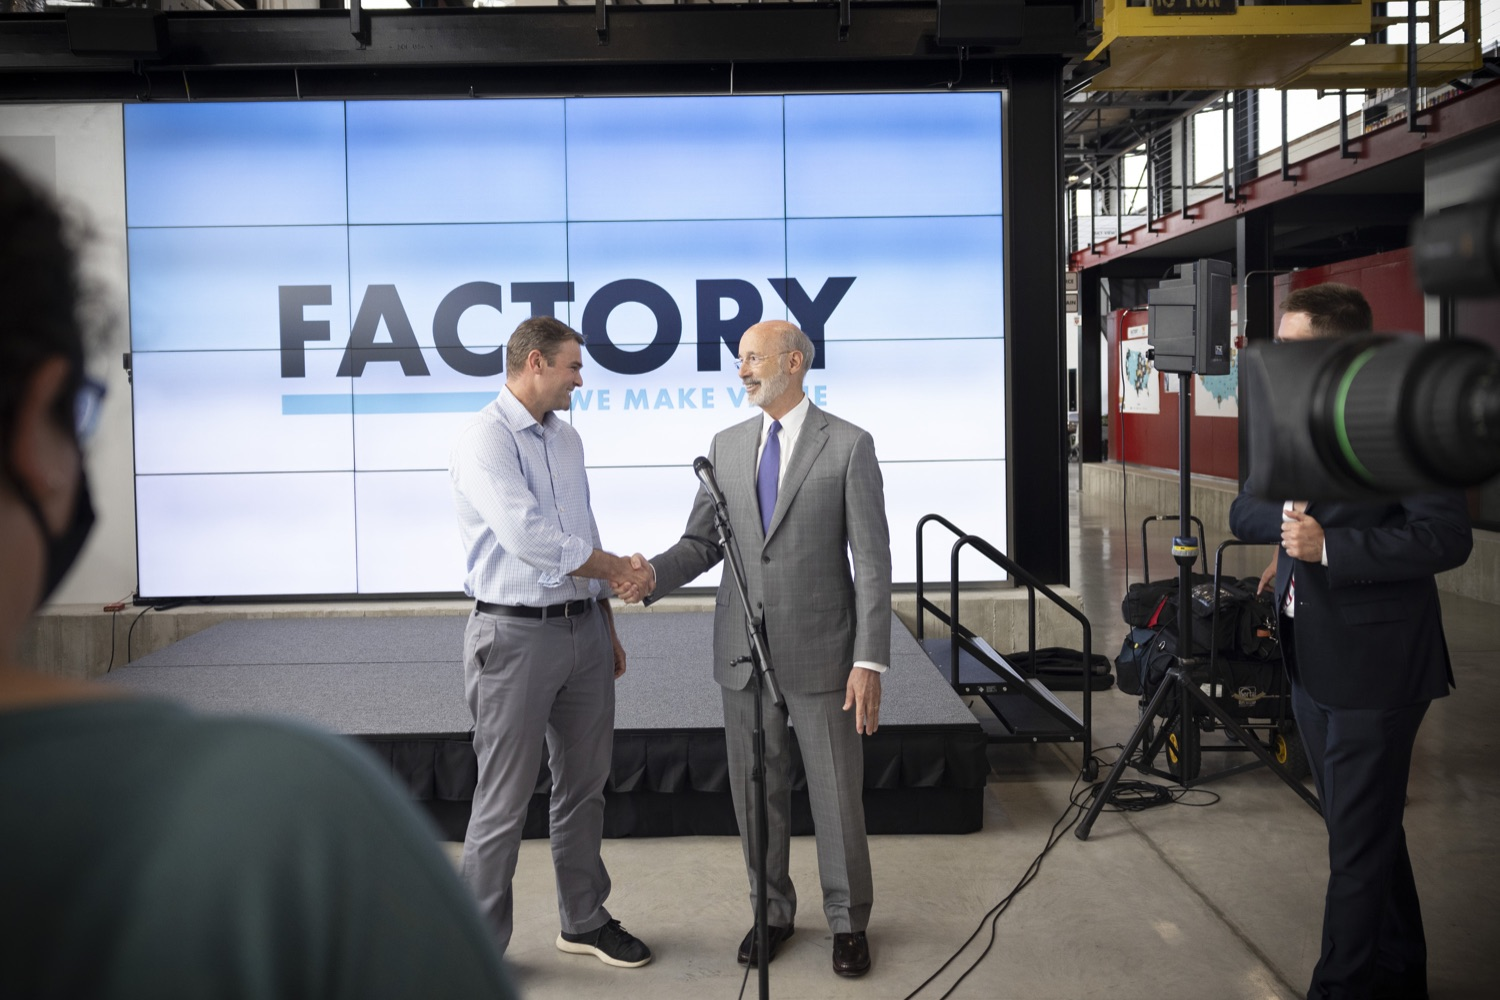 """<a href=""""https://filesource.wostreaming.net/commonwealthofpa/photo/18941_gov_economicDevelopment_dz_018.jpg"""" target=""""_blank"""">⇣Download Photo<br></a>Pennsylvania Governor Tom Wolf and Keith Caldwell, Partner  Factory LLC speaking with the press.  Governor Tom Wolf today visited Factory LLC in Bethlehem to tour the facility and highlight the importance of investing in Pennsylvanias start-up companies. During the visit, he met with companies affiliated with Factory, including Stuffed Puffs®, which received a $1 million funding proposal from the commonwealth in 2019 to expand its manufacturing operations and create jobs, Mikeys®, Pipcorn®, Honey Stinger®, and ROAR® Organic. Bethlehem, PA  July 19, 2021"""